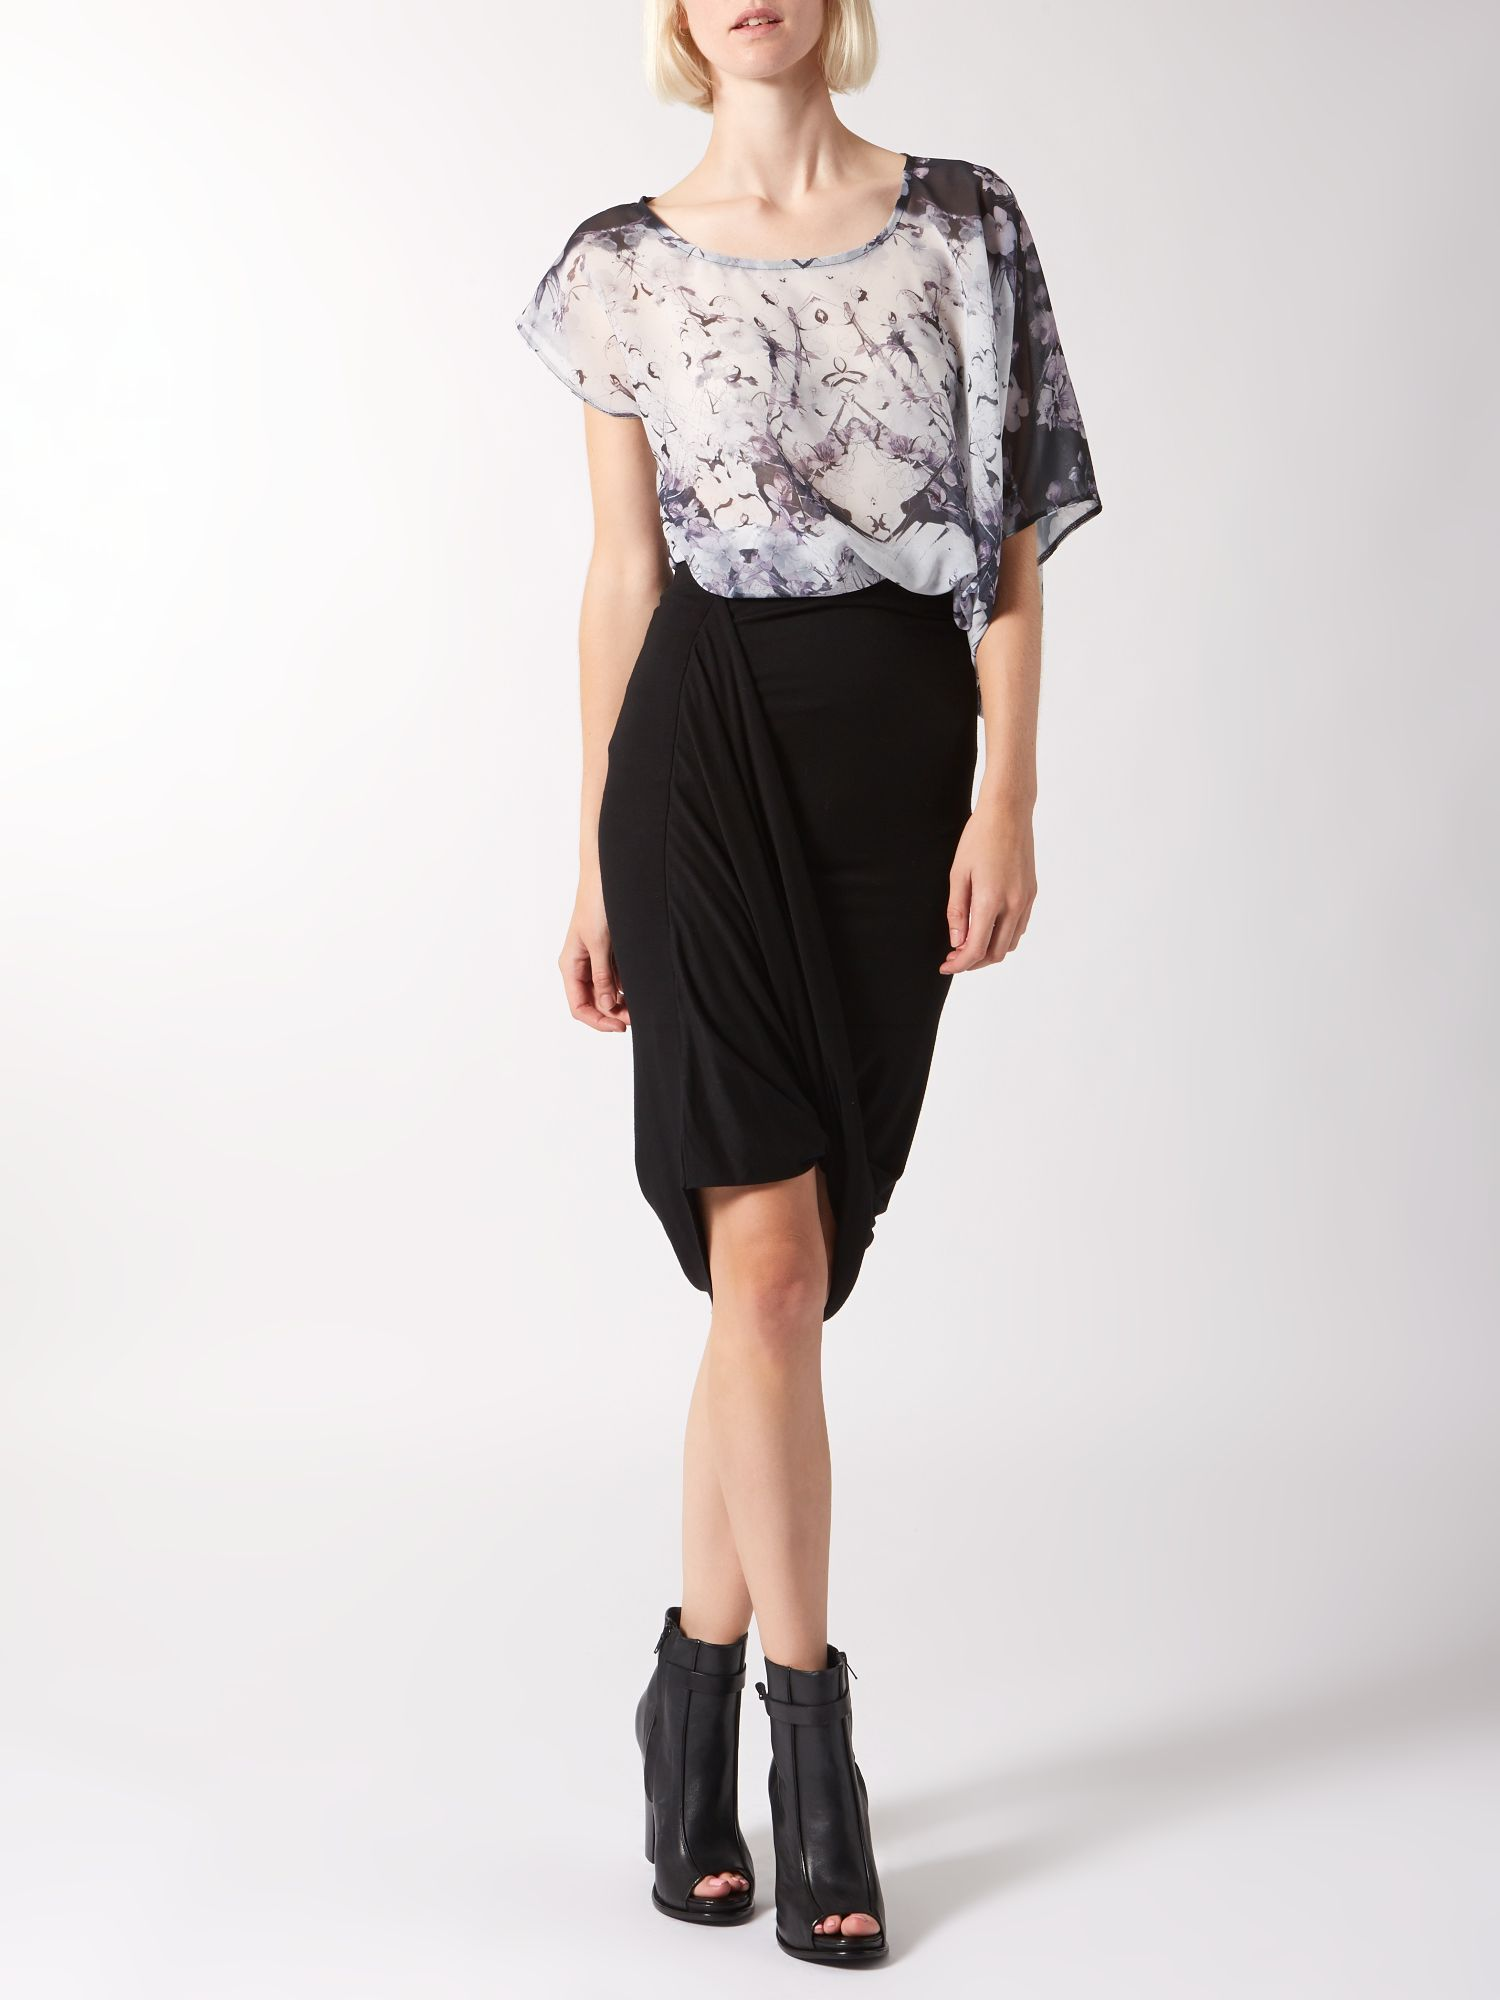 Hitch & gather jersey skirt